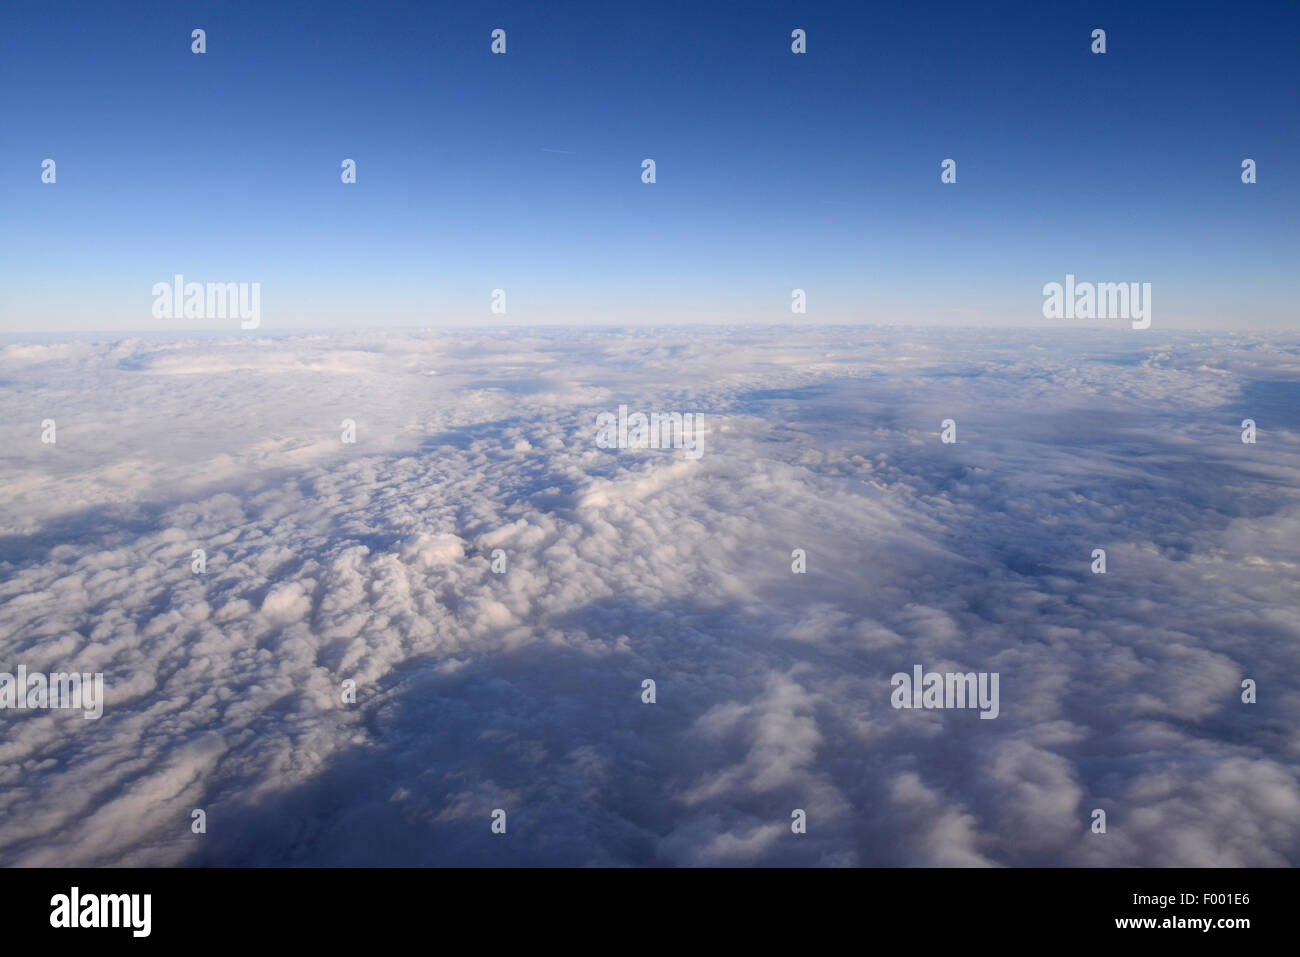 cloudy sky over Madagascar, view from airplane, Madagascar - Stock Image